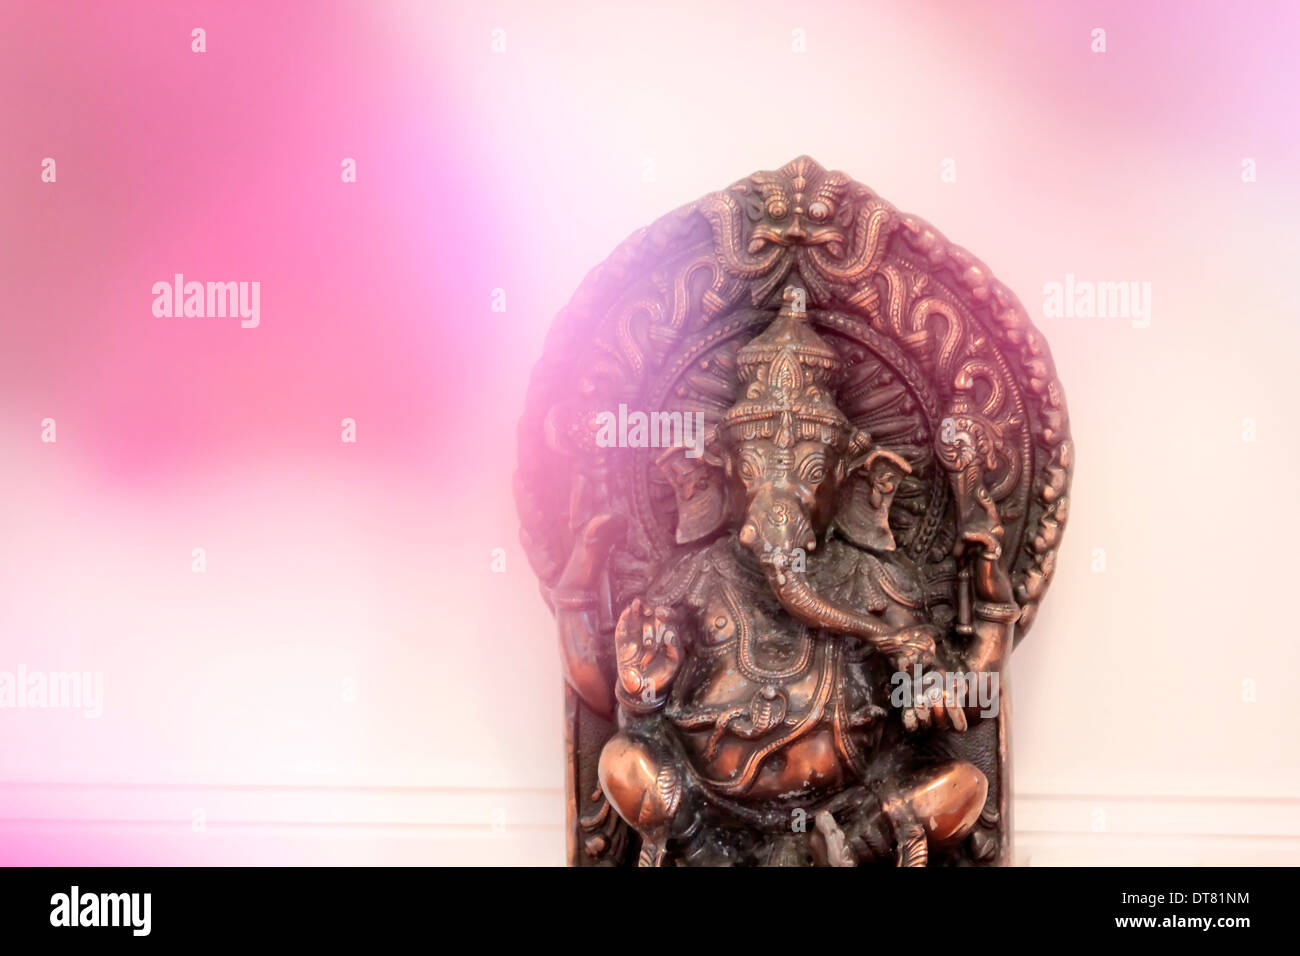 Statue of the Hindu deity Ganesha as a decoration in a yoga room - Stock Image